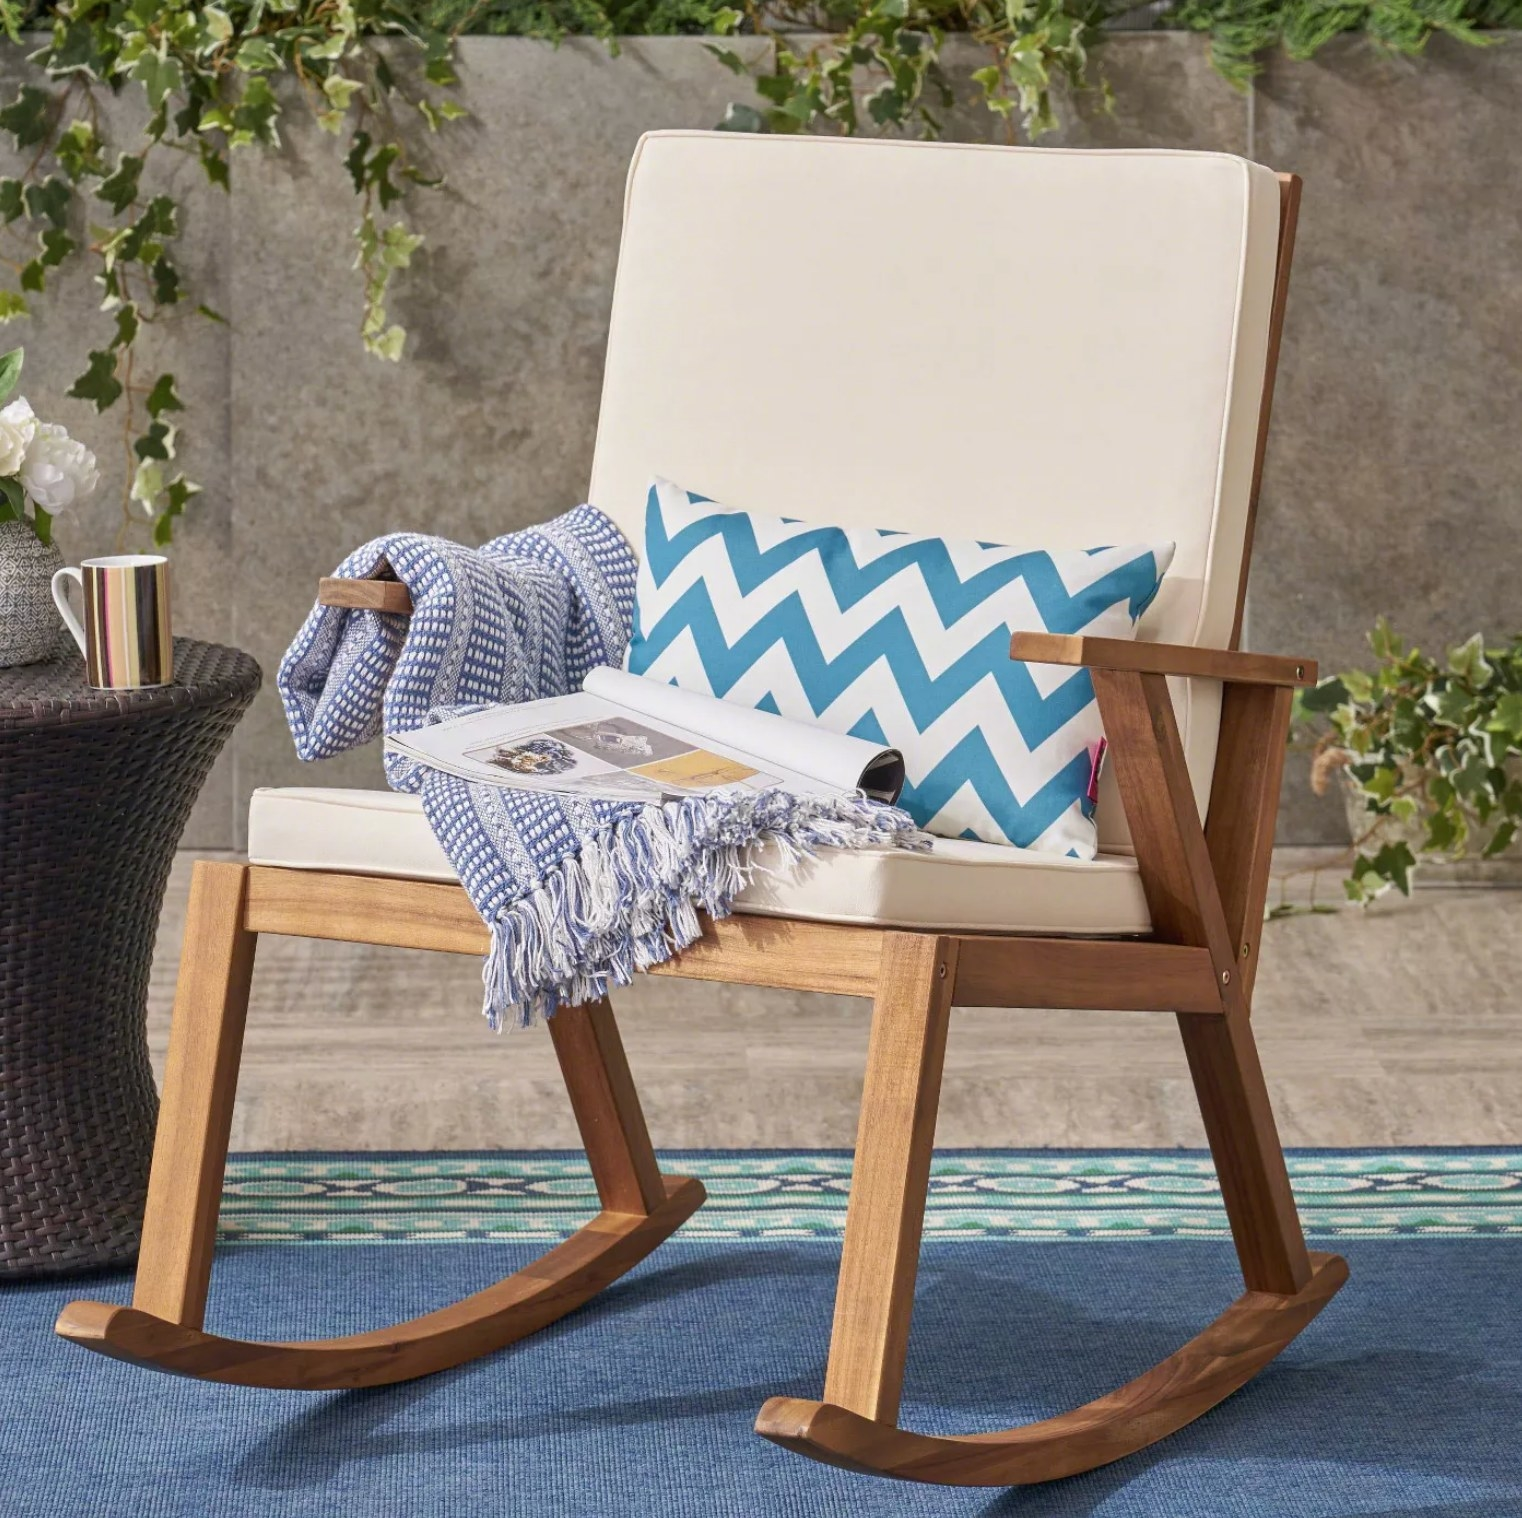 The teak chair styled with a pillow, blanket, and magazine